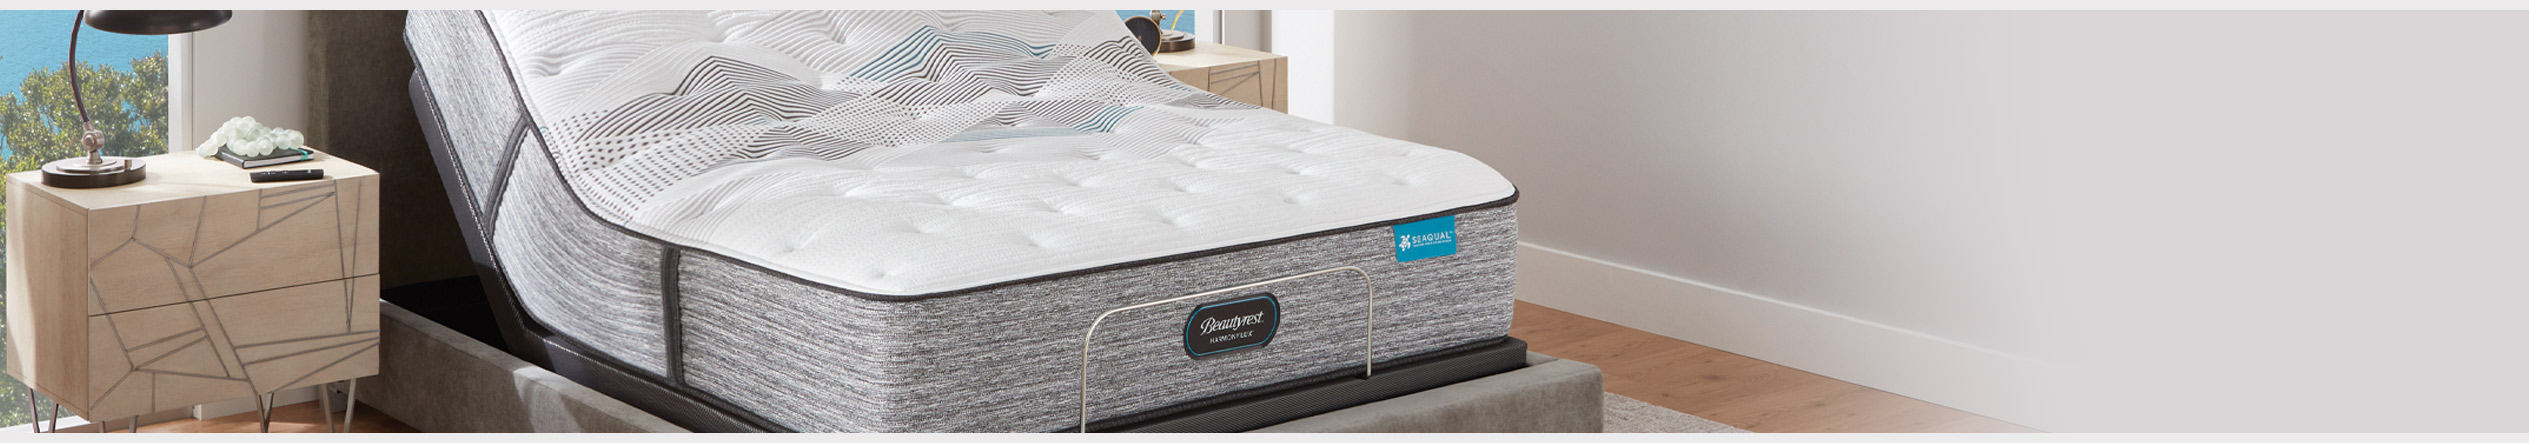 Mattresses for sale at Jordan's Furniture stores in MA, NH and RI